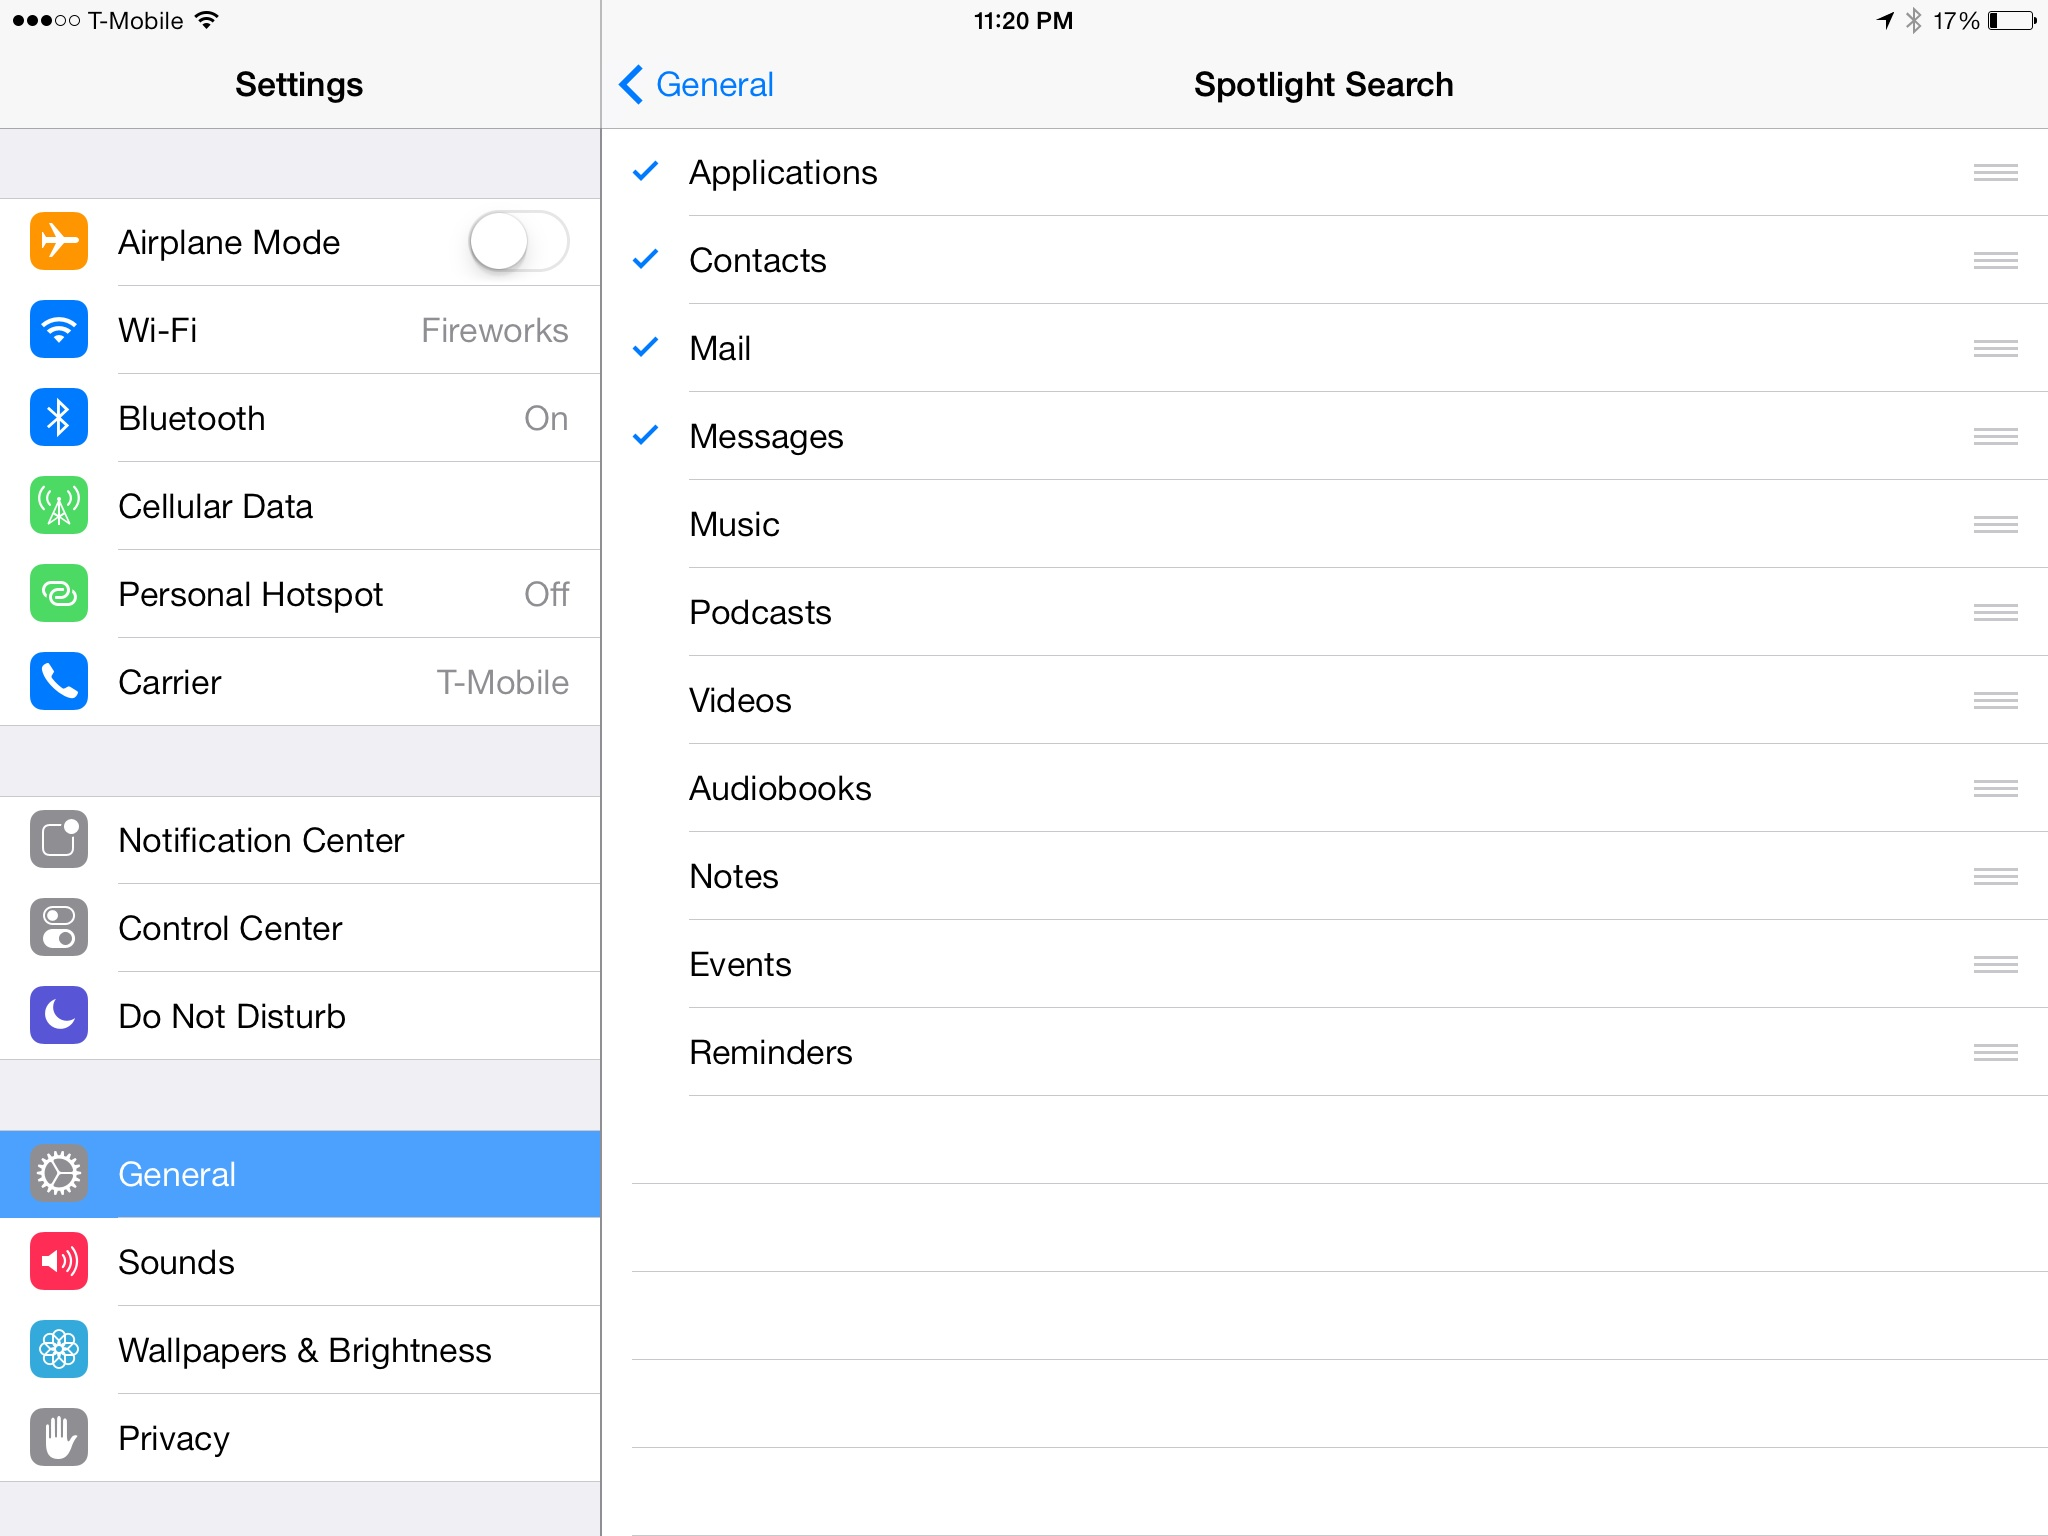 Spotlight search options